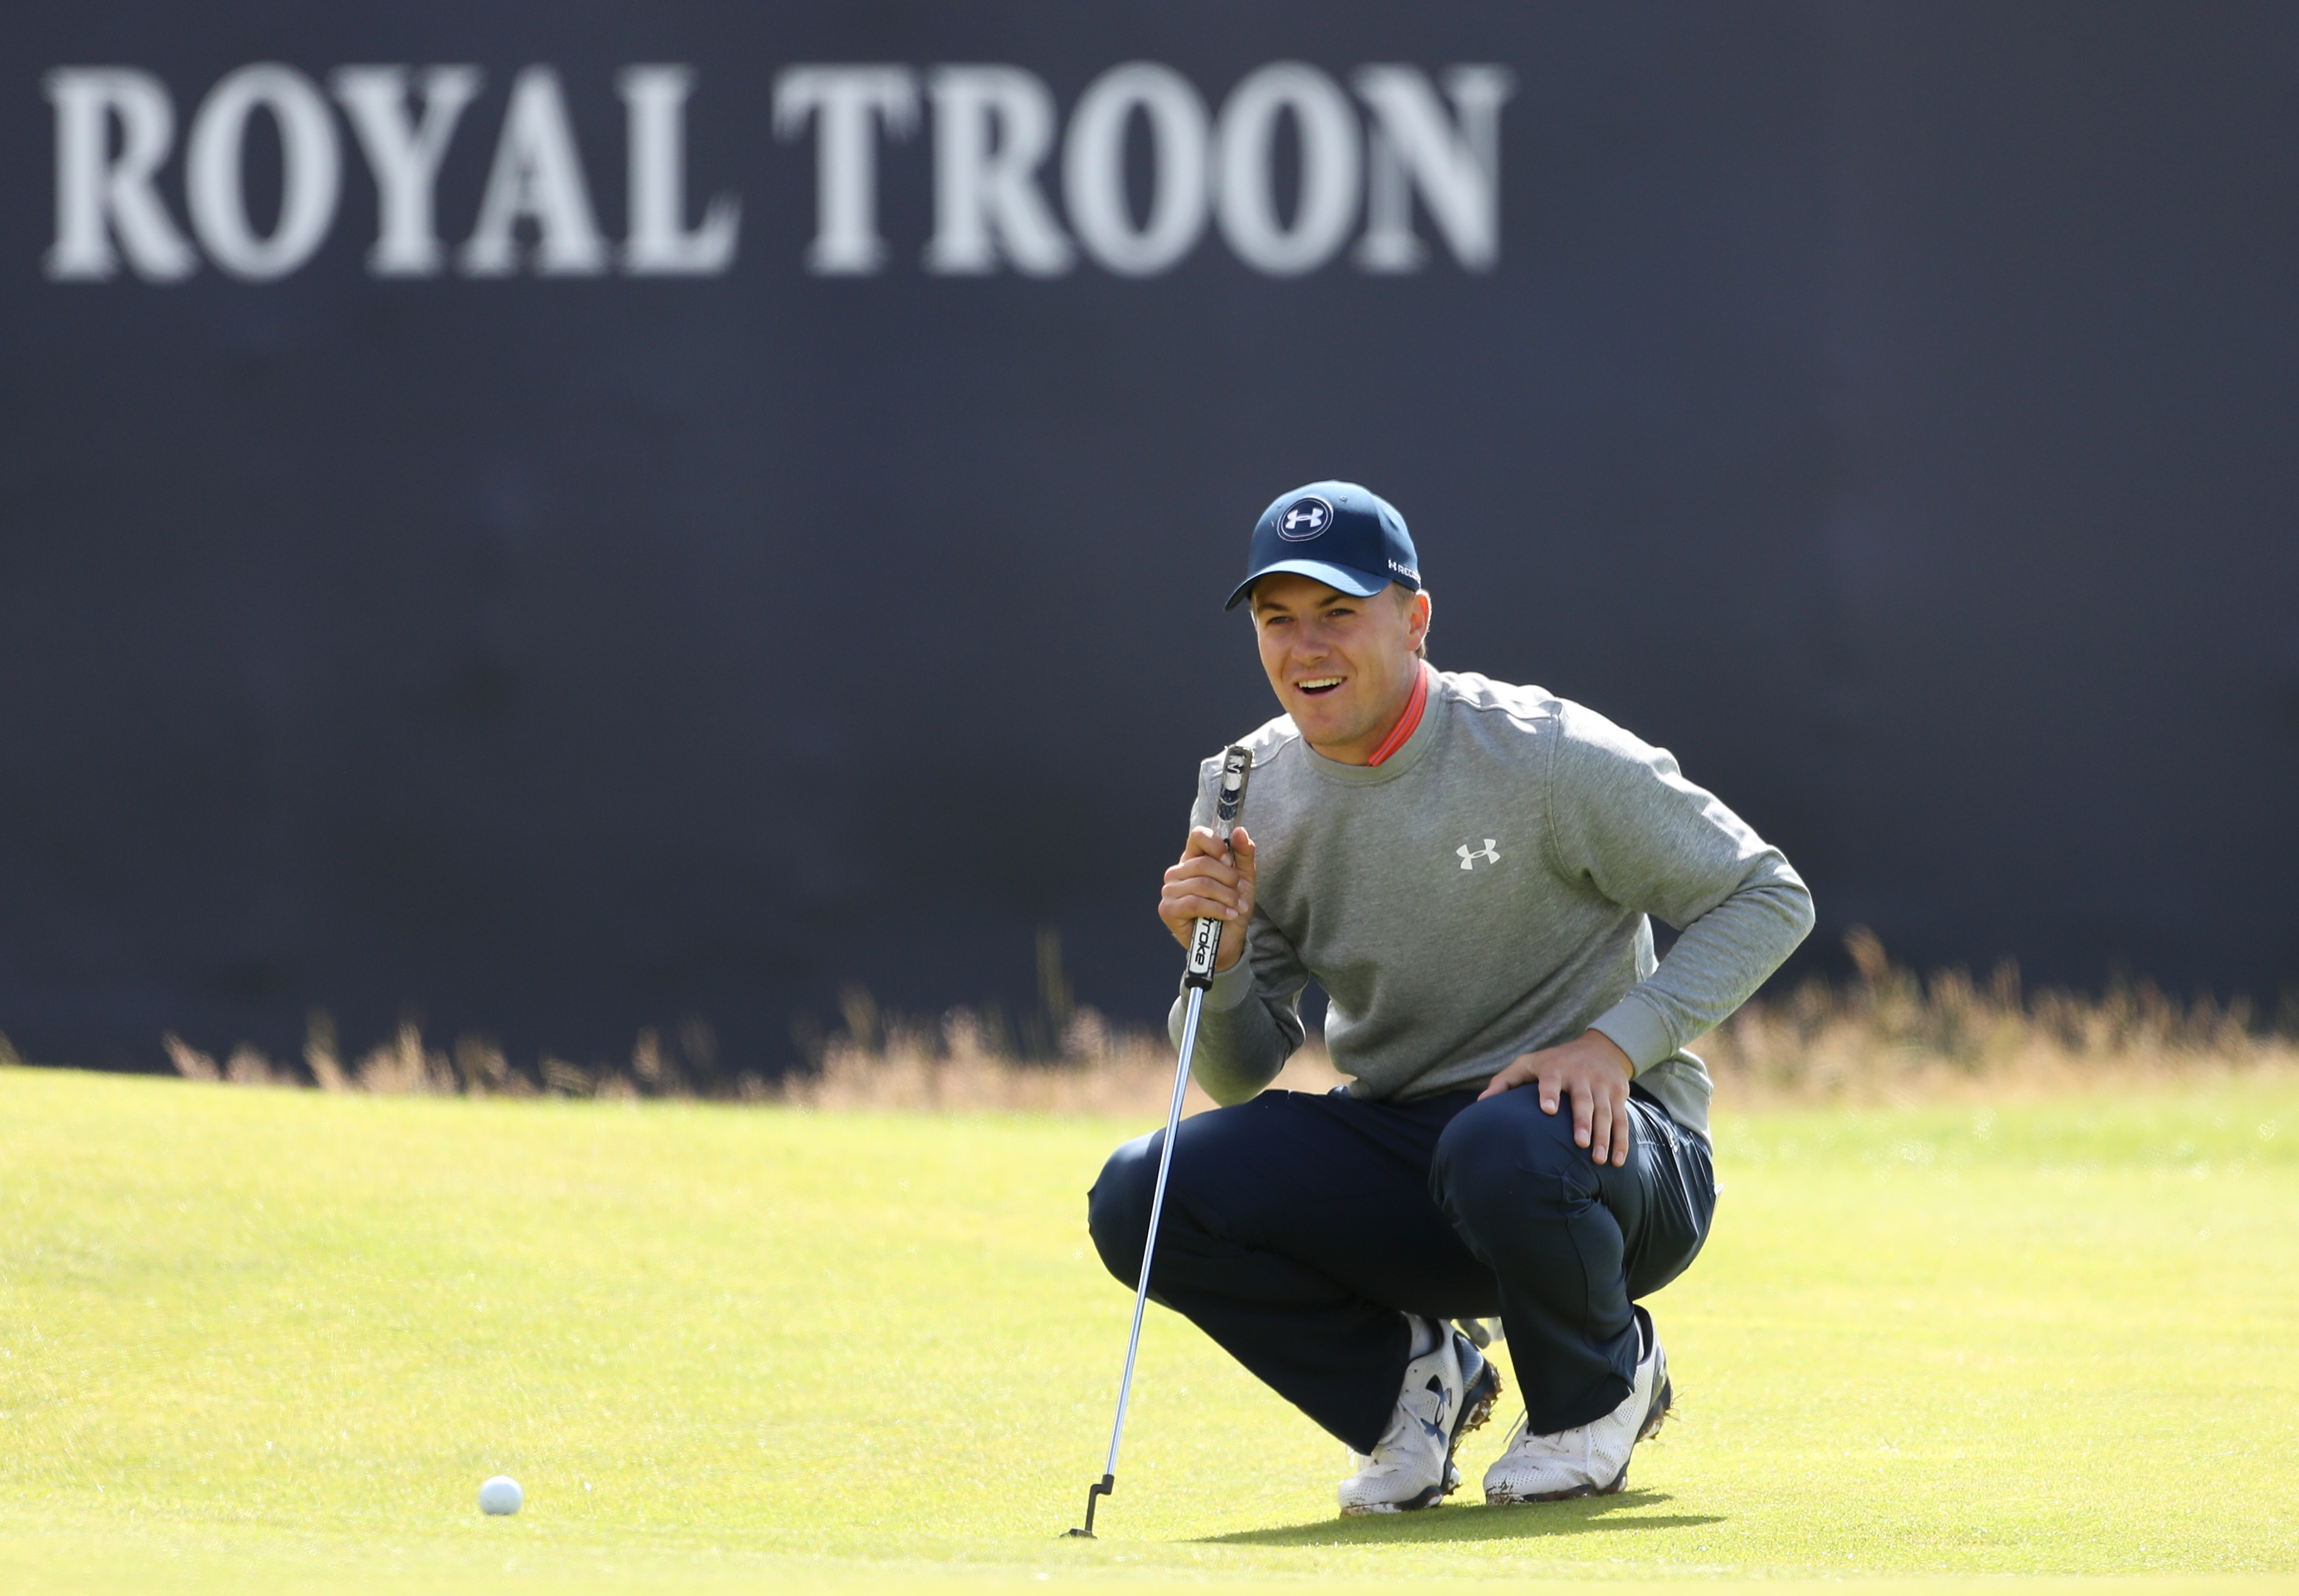 Jordan Spieth of the United States smiles as he look at his putt on the 18th green during a practice round ahead of the British Open Golf Championship at the Royal Troon Golf Club in Troon, Scotland, Wednesday, July 13, 2016. The British Open starts Thurs